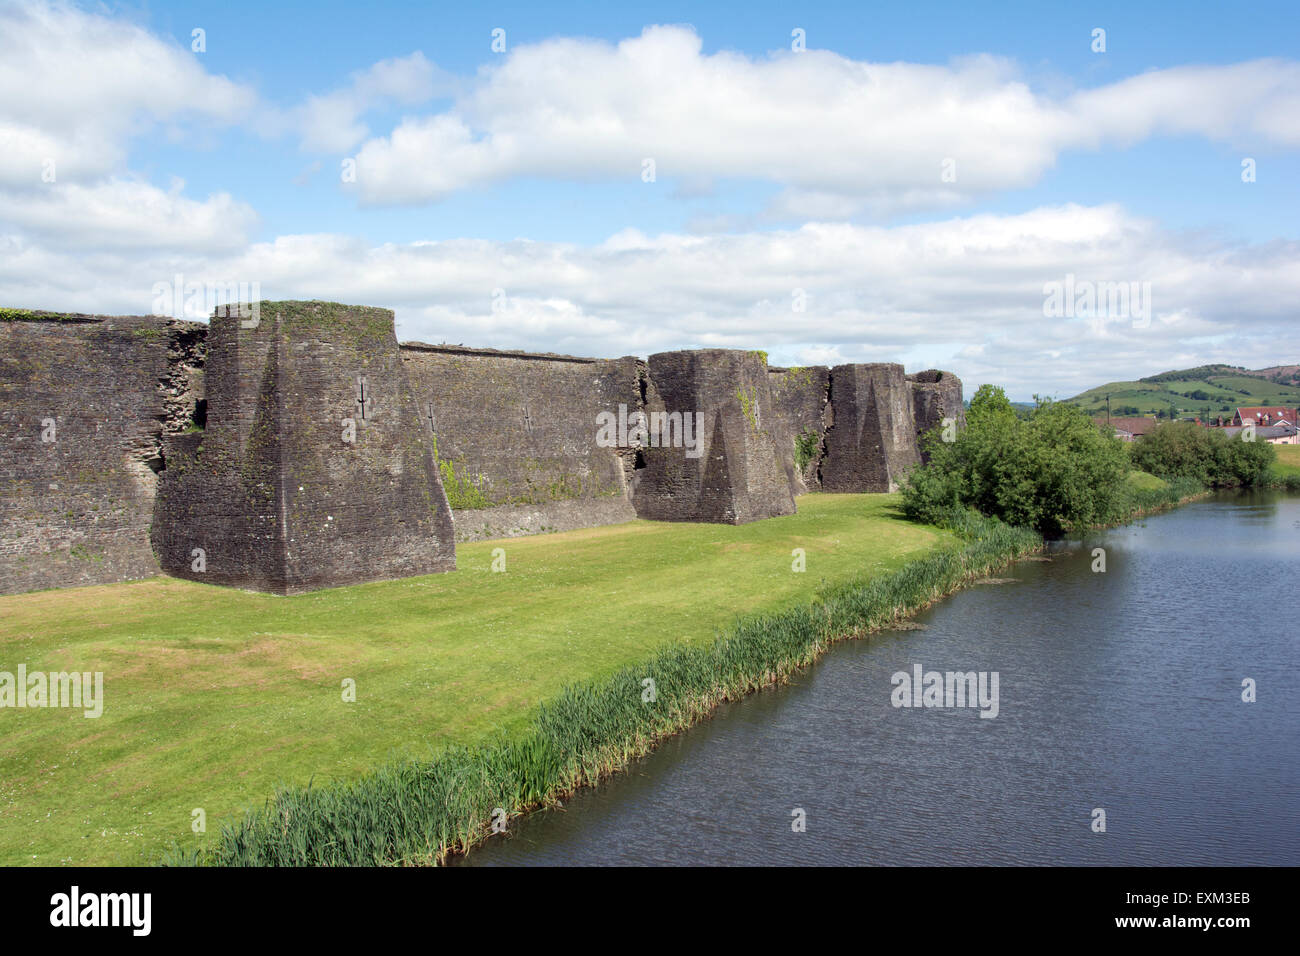 WALES; CAERPHILLY; CAERPHILLY CASTLE WALLS AND MOAT - Stock Image